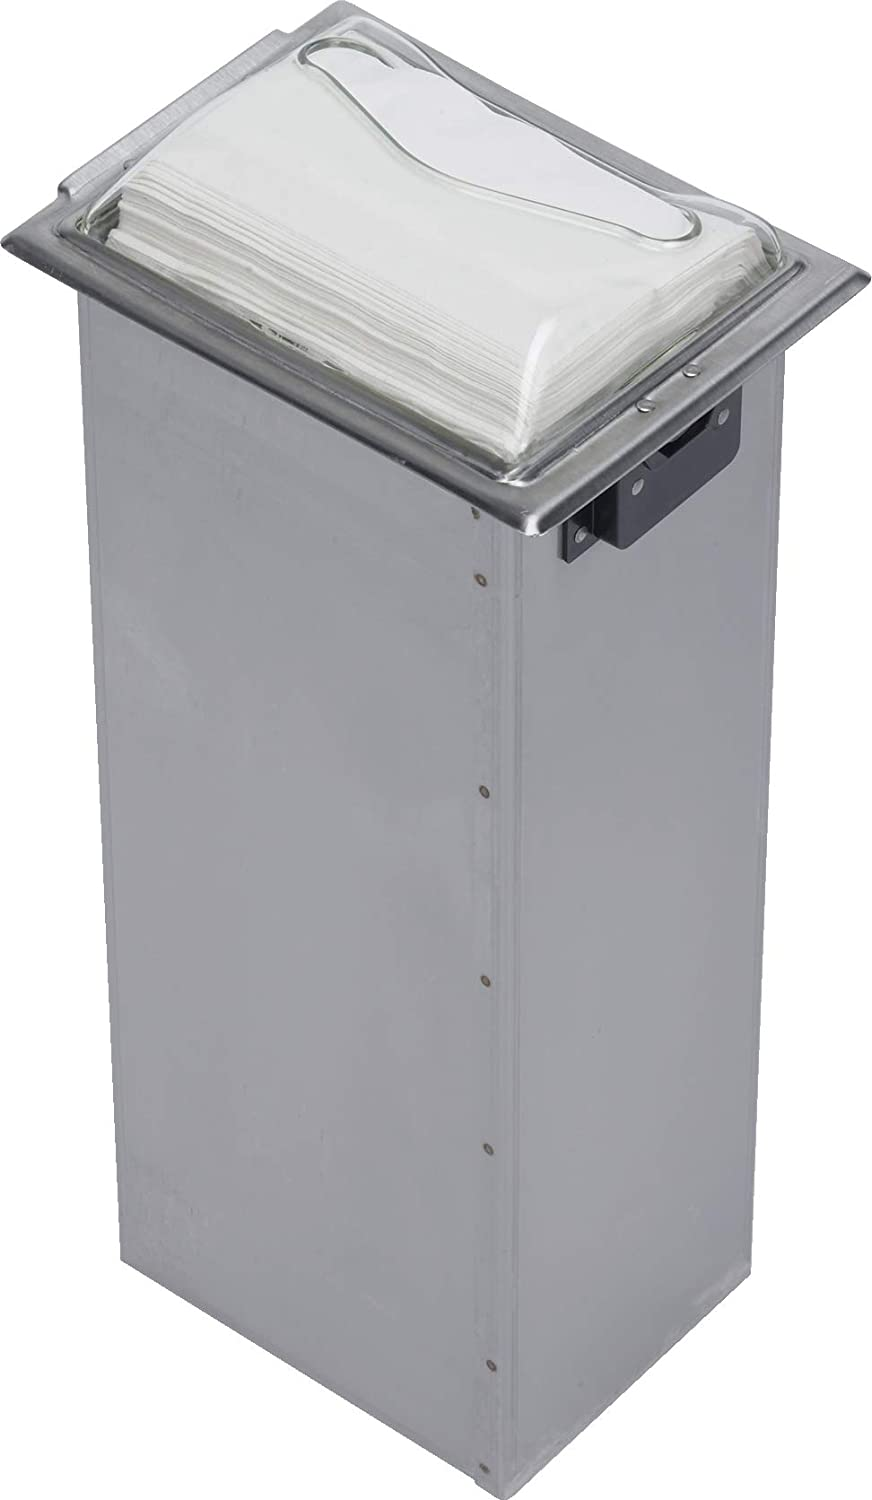 San Jamar H2005 Stainless Steel In-Counter Fullfold Control Napkin Dispenser, 750 Plus Capacity, 7 Width x 19-5/8 Height x 5-1/2 Depth, Clear/Satin Stainless H2005CLSS